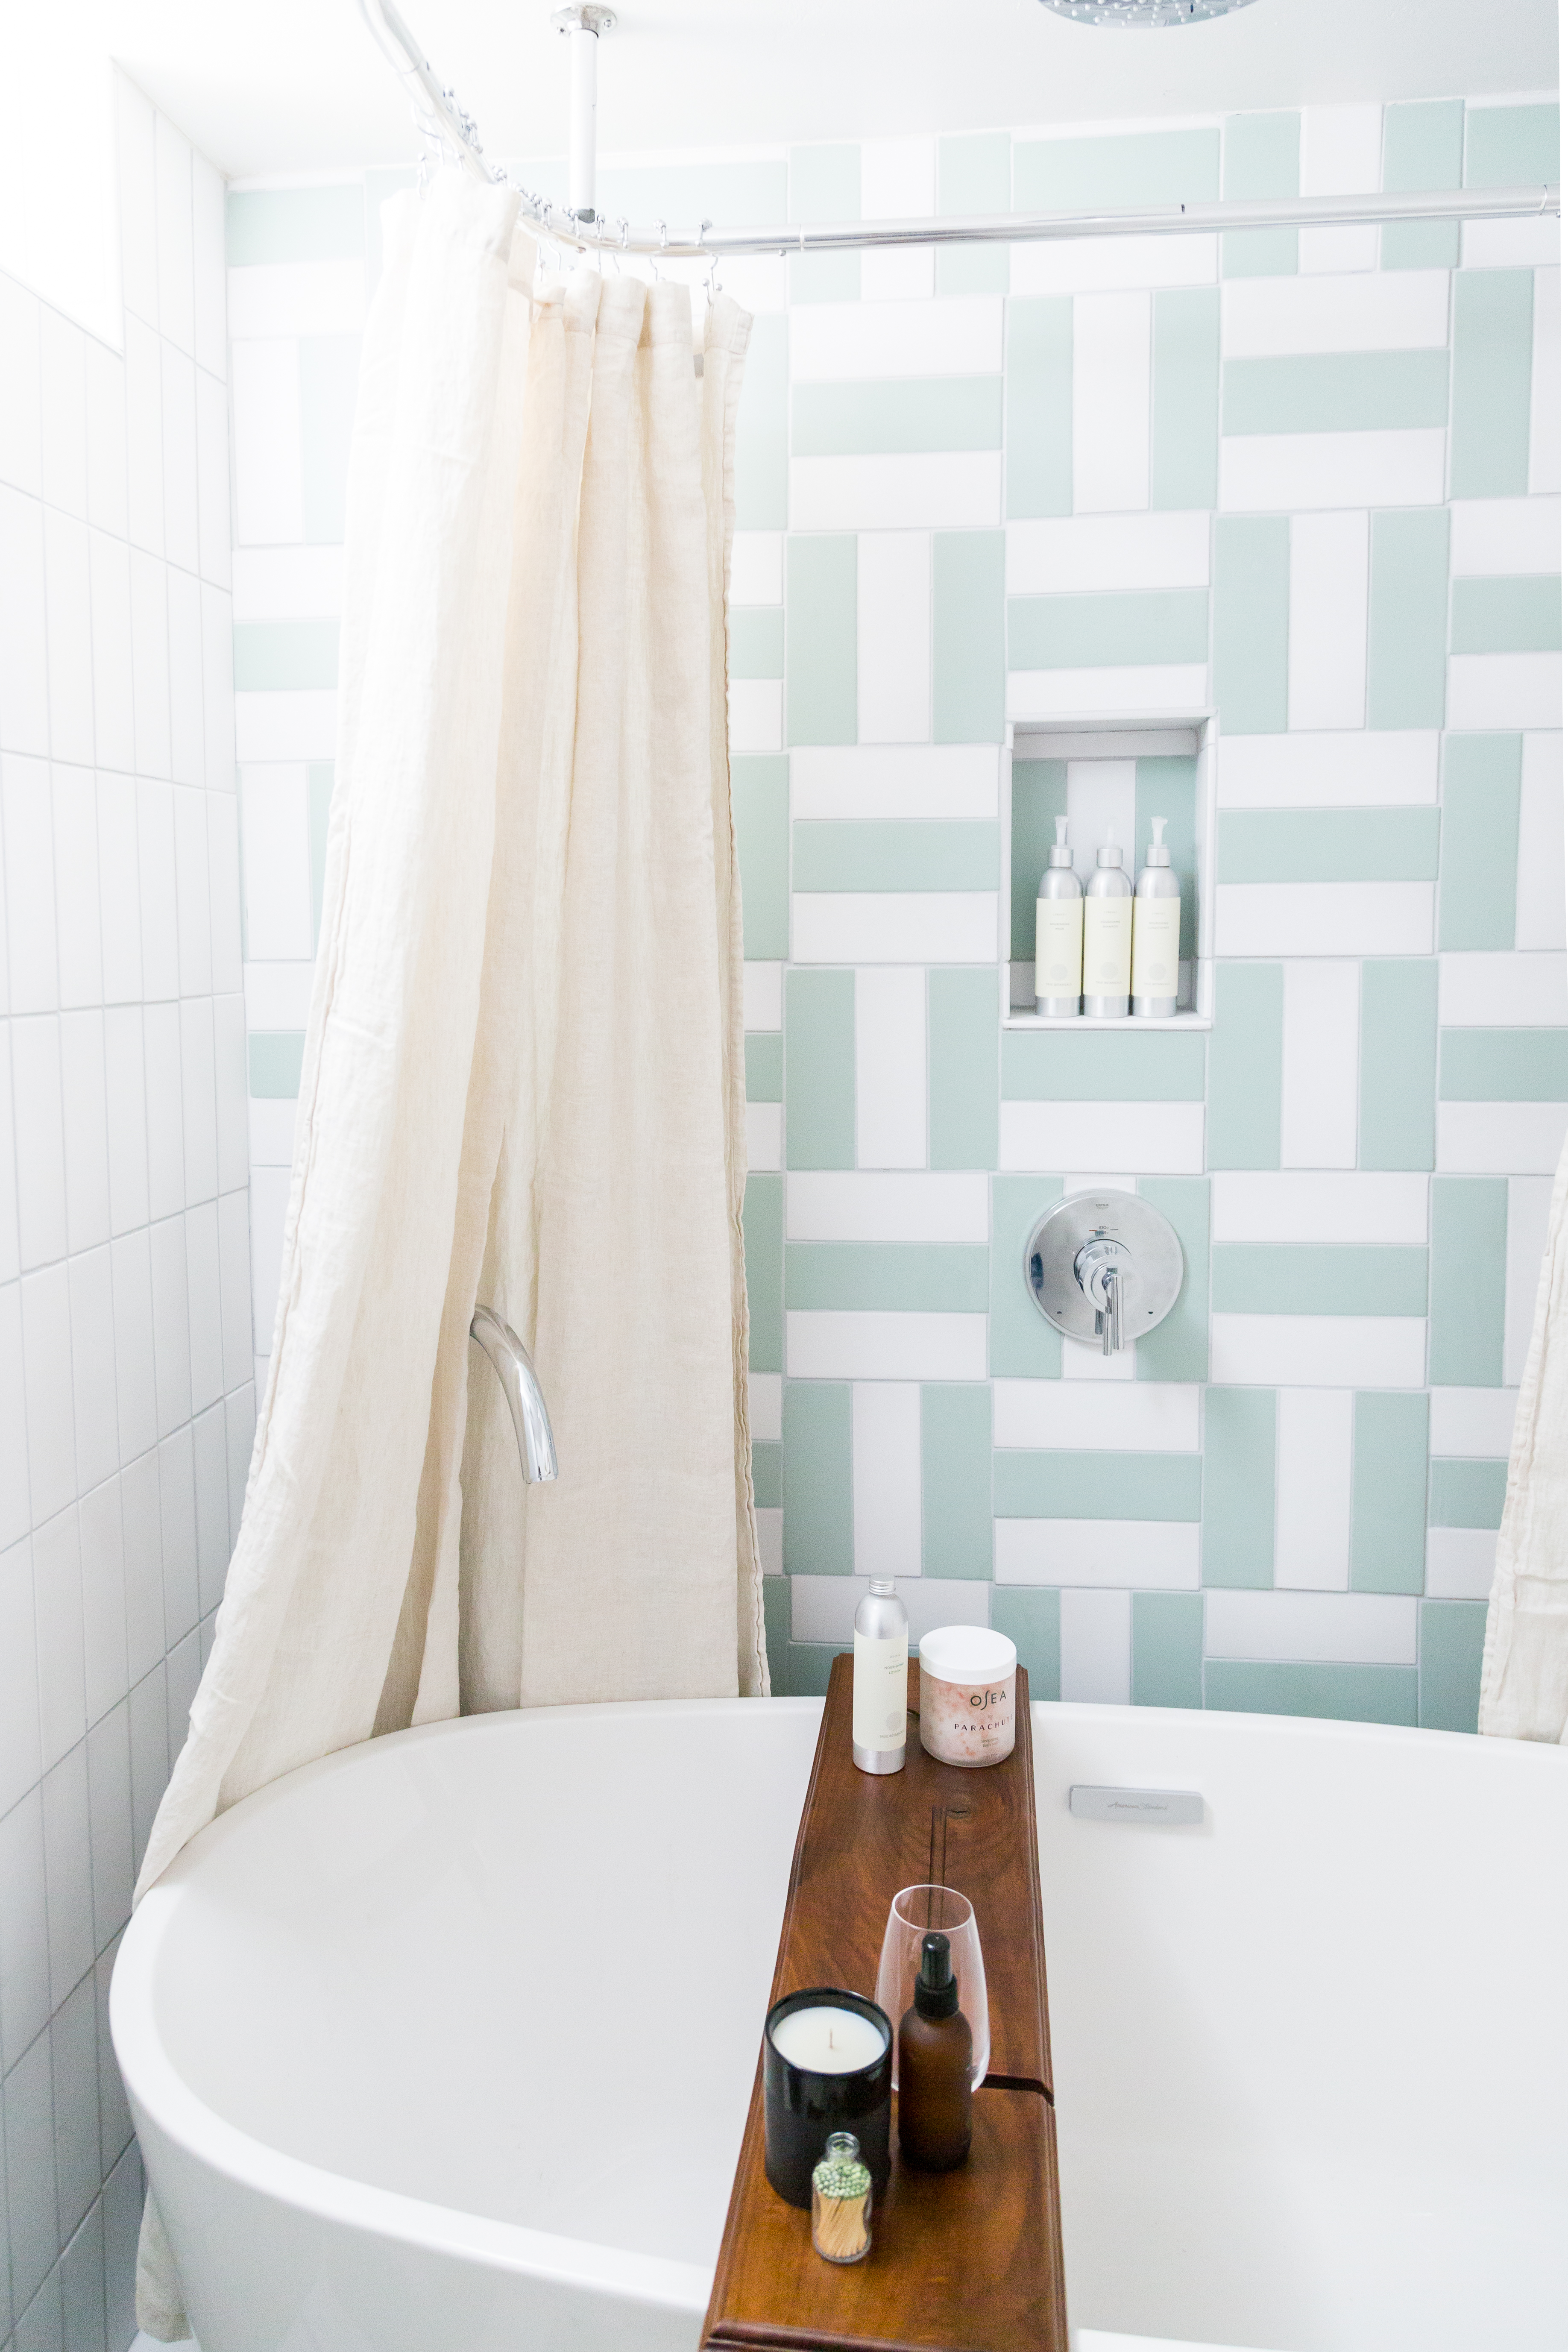 3x9 tiles in Daisy and Sea Glass set in a parquet pattern